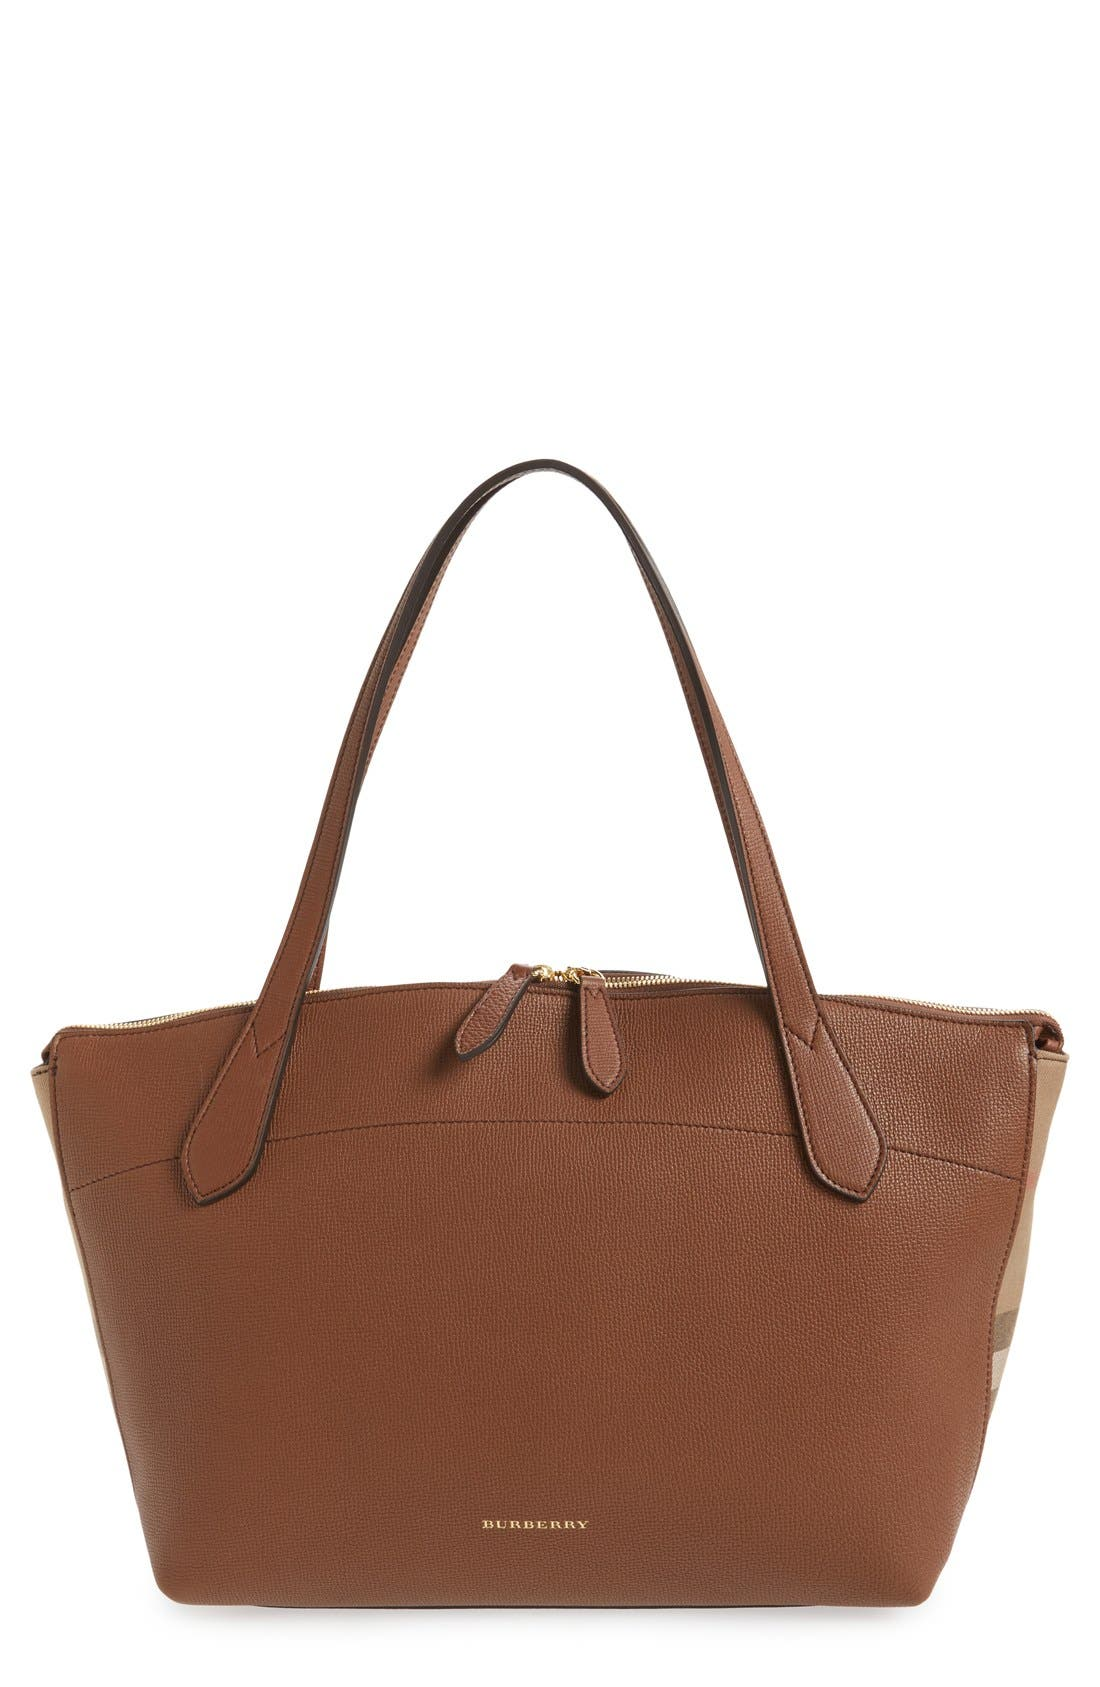 Burberry Welburn Check Leather Tote